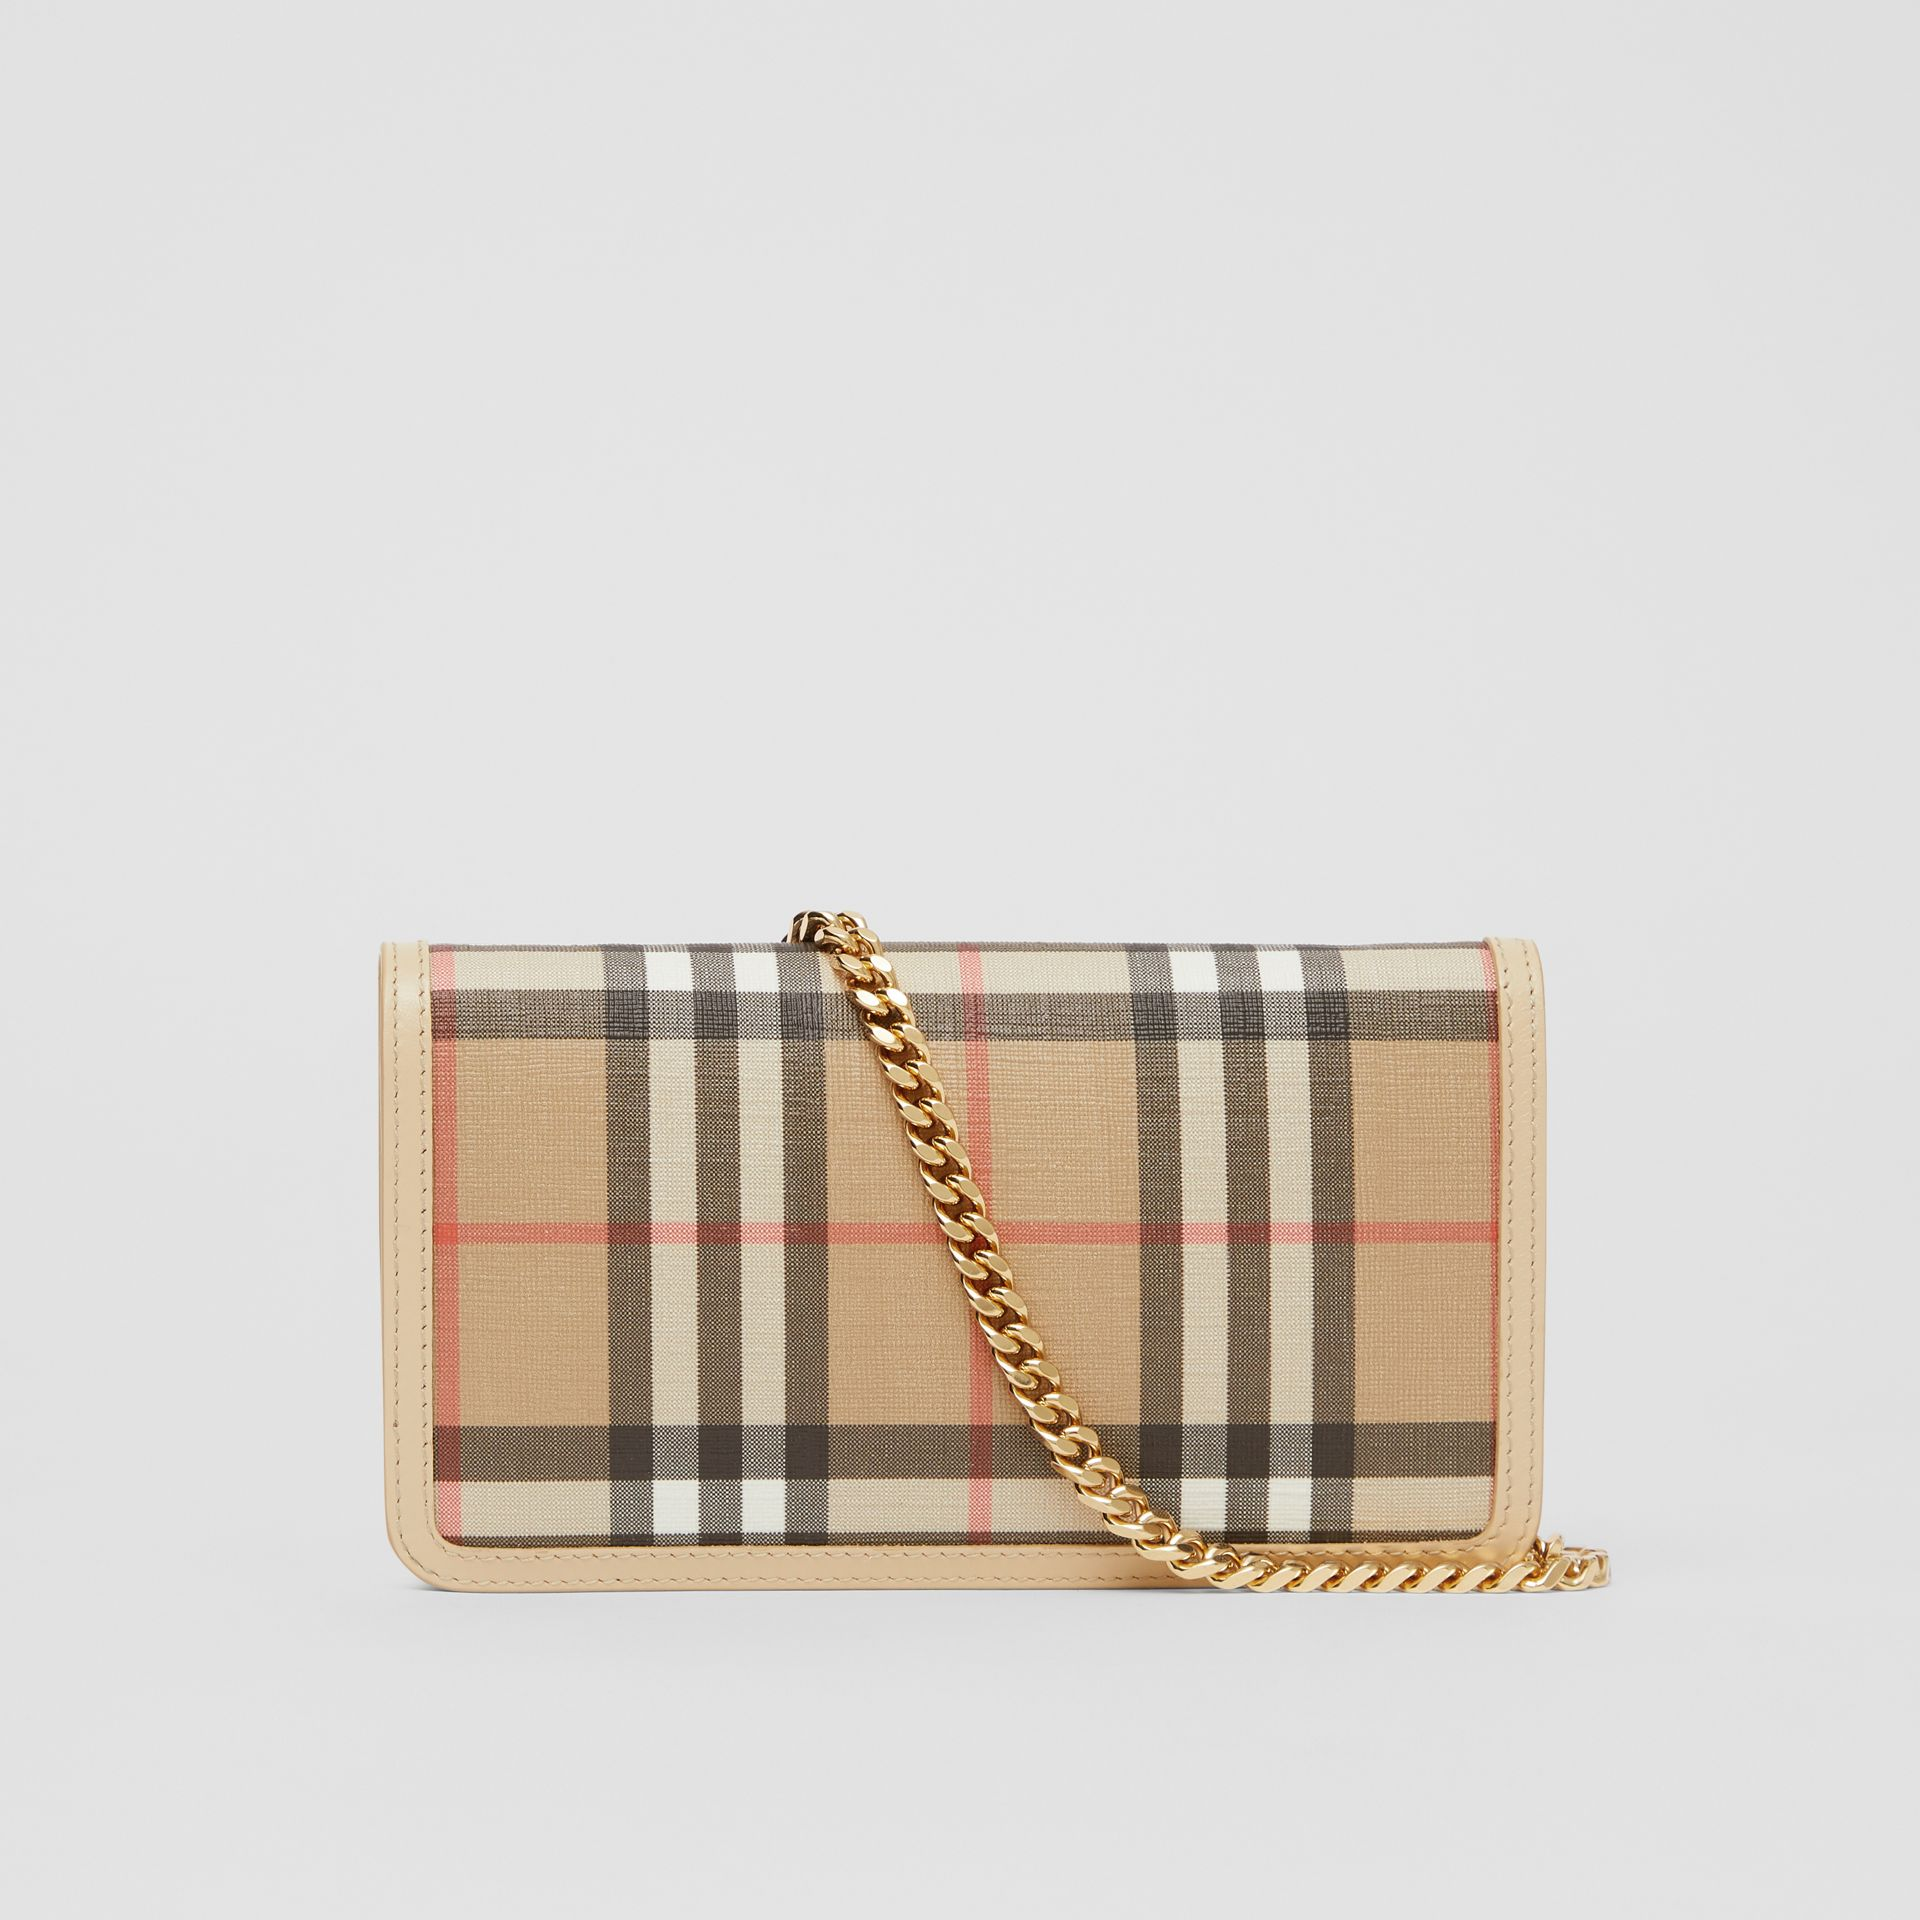 Vintage Check E-canvas Phone Wallet with Strap in Beige - Women | Burberry - gallery image 5